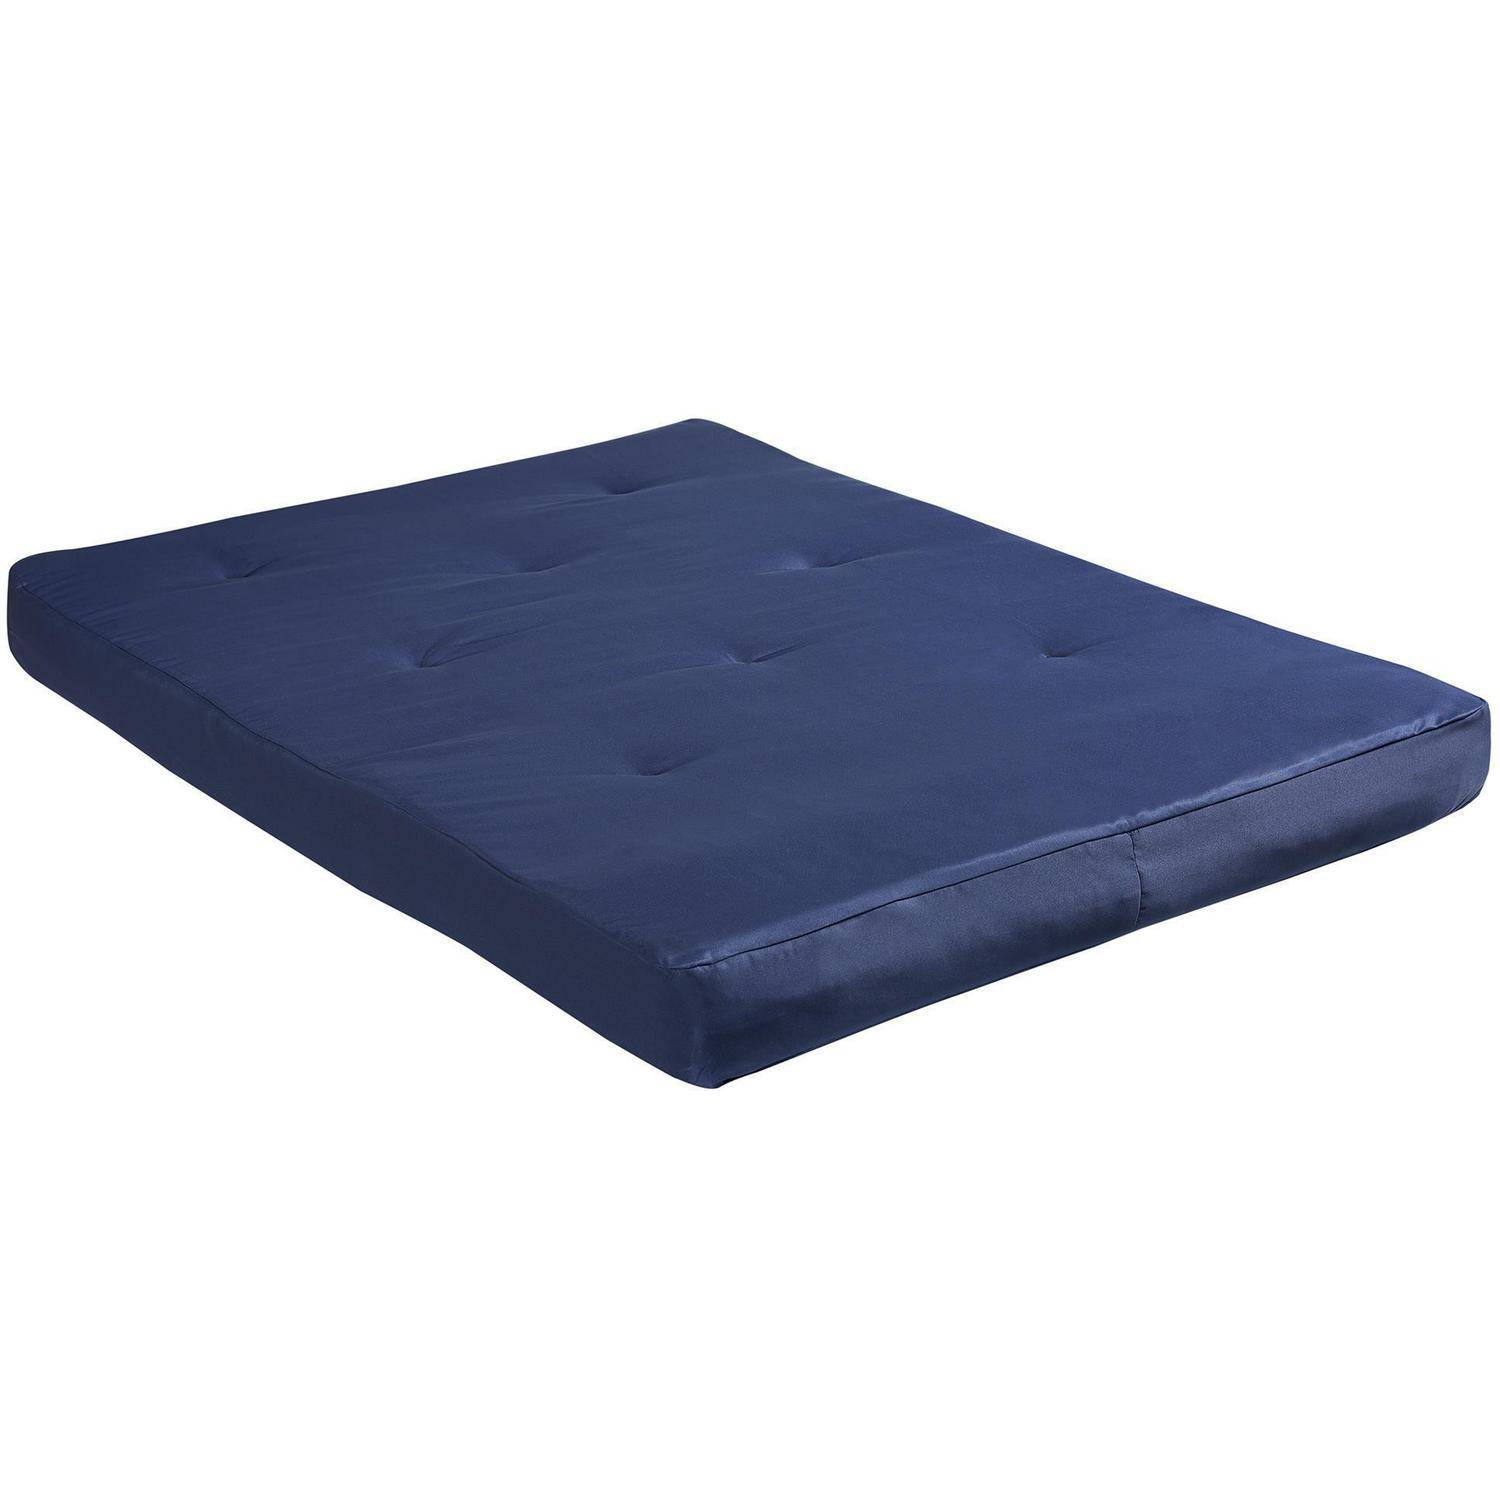 Medium image of dhp 8   futon mattress full size navy blue